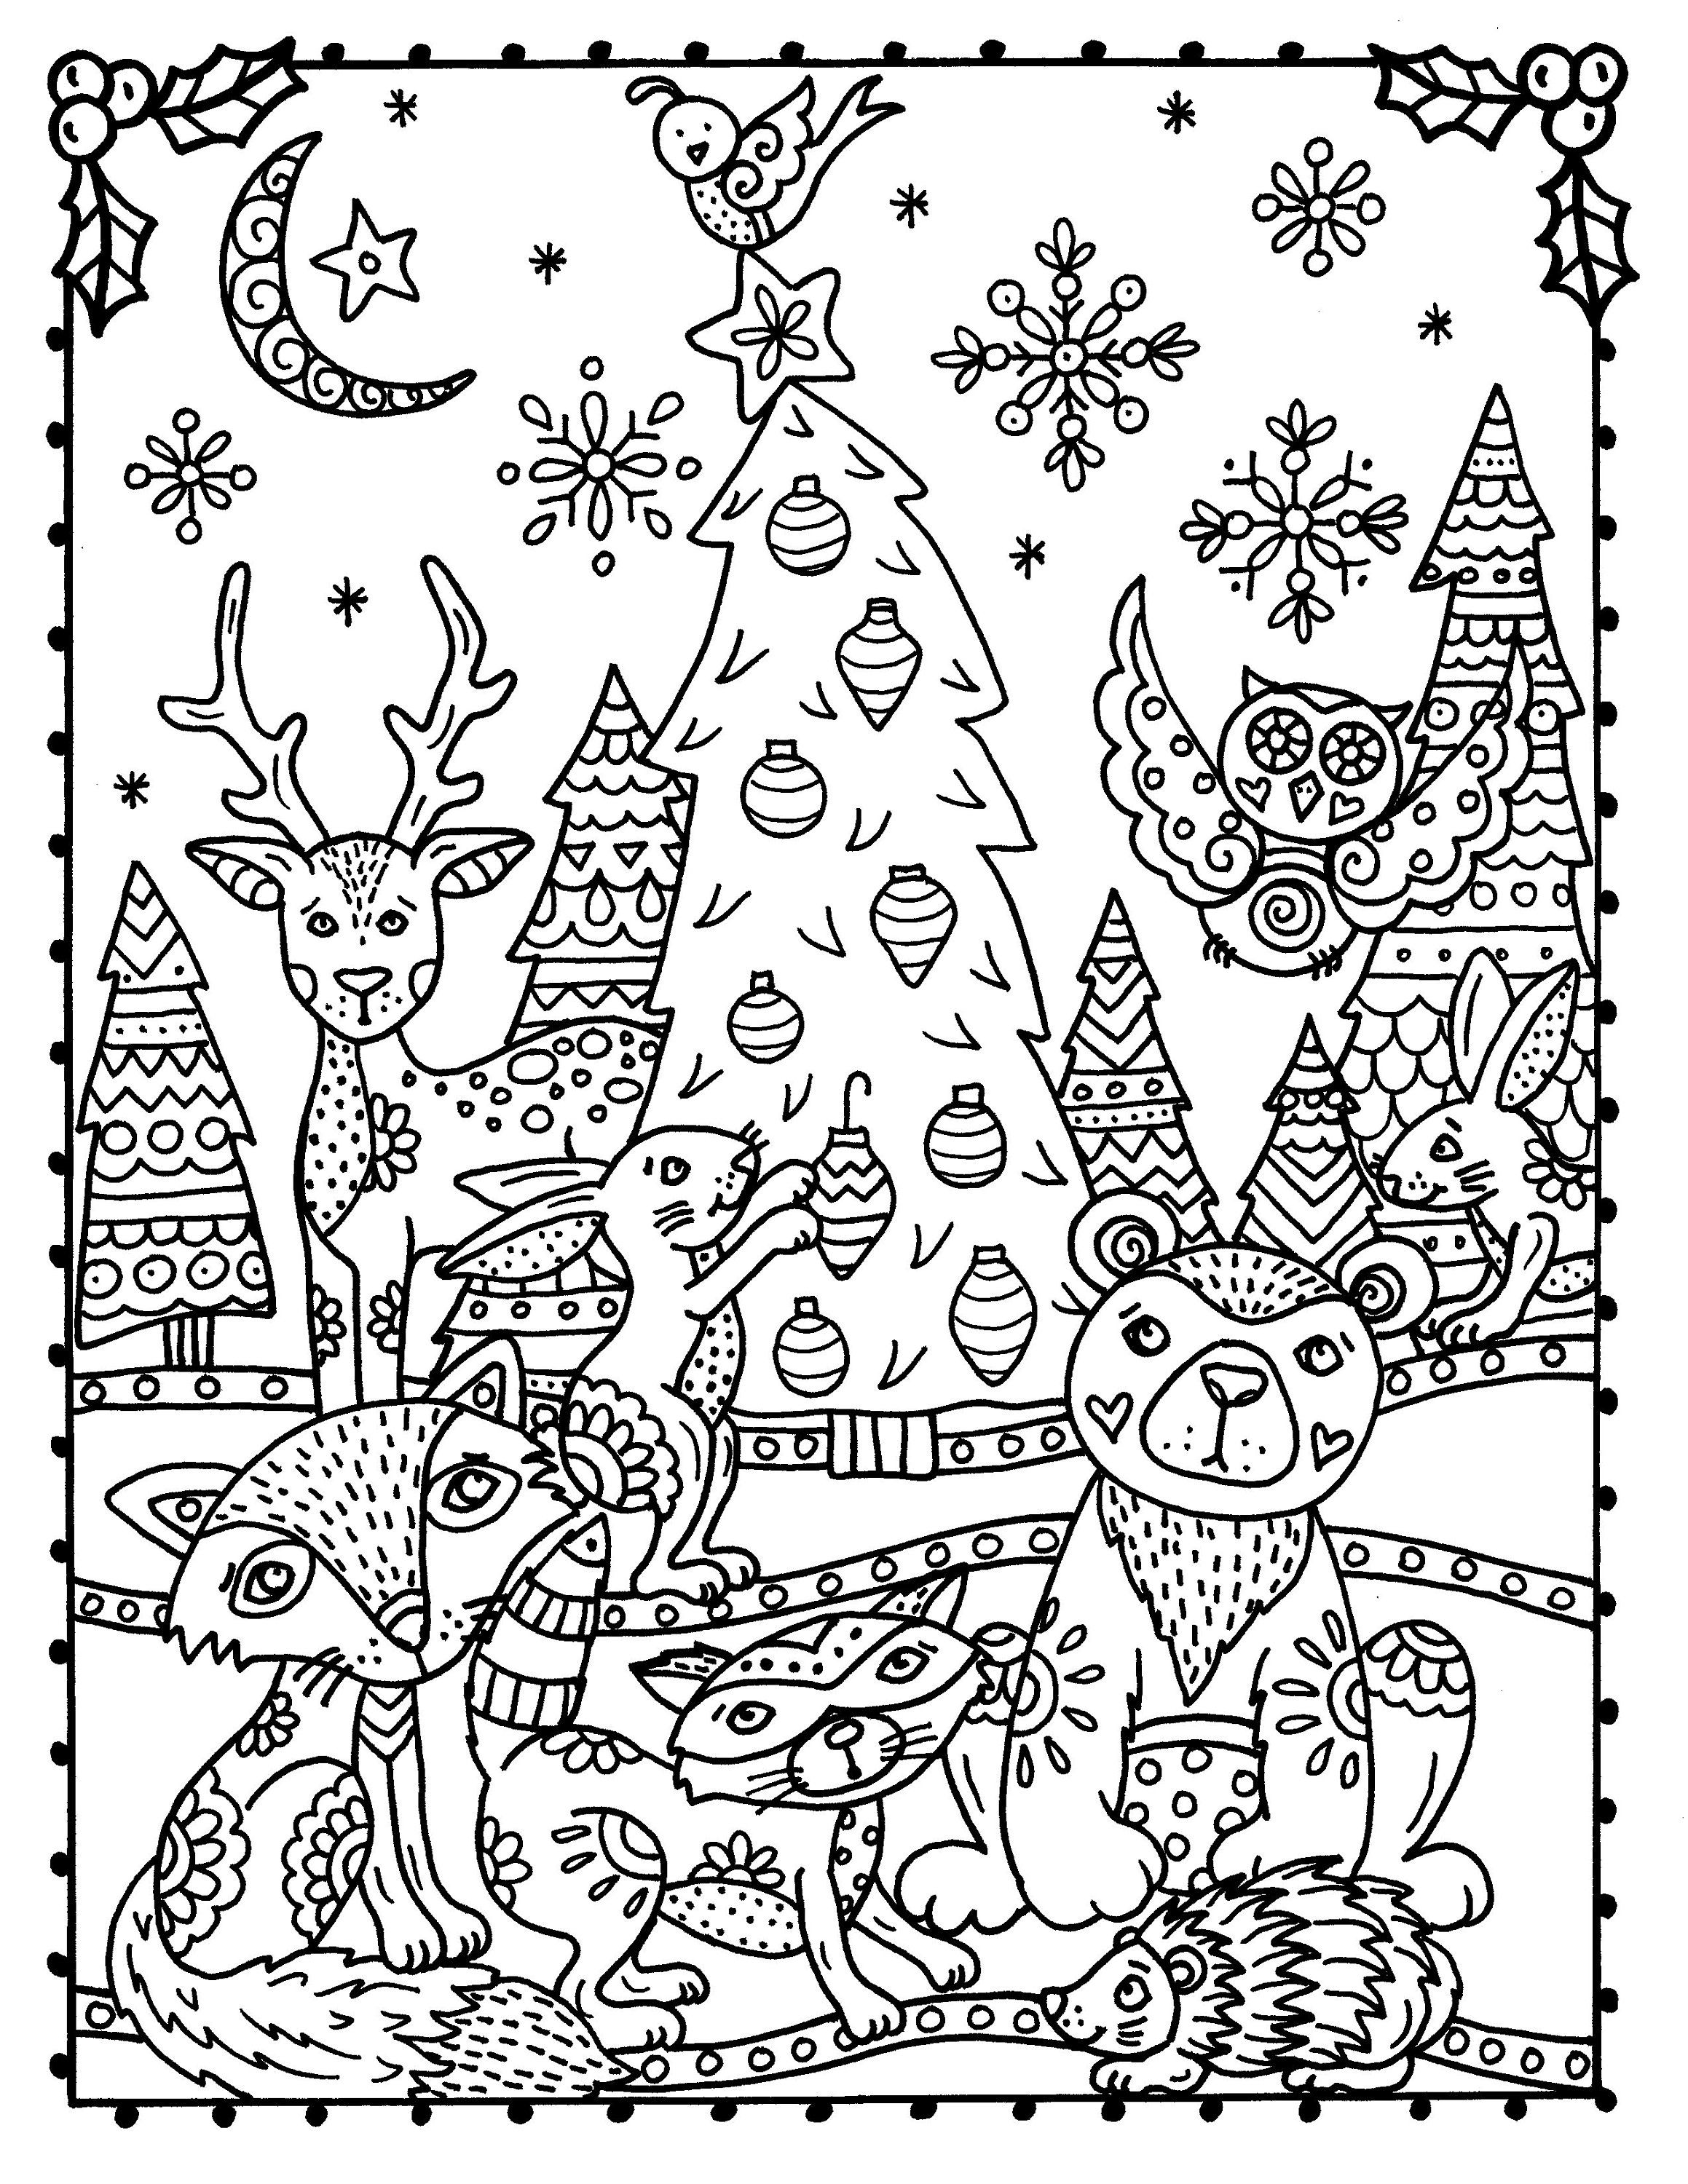 Christmas Little Elephant With A Christmas Card Coloring Page Elephant Coloring Page Animal Coloring Pages Christmas Coloring Pages